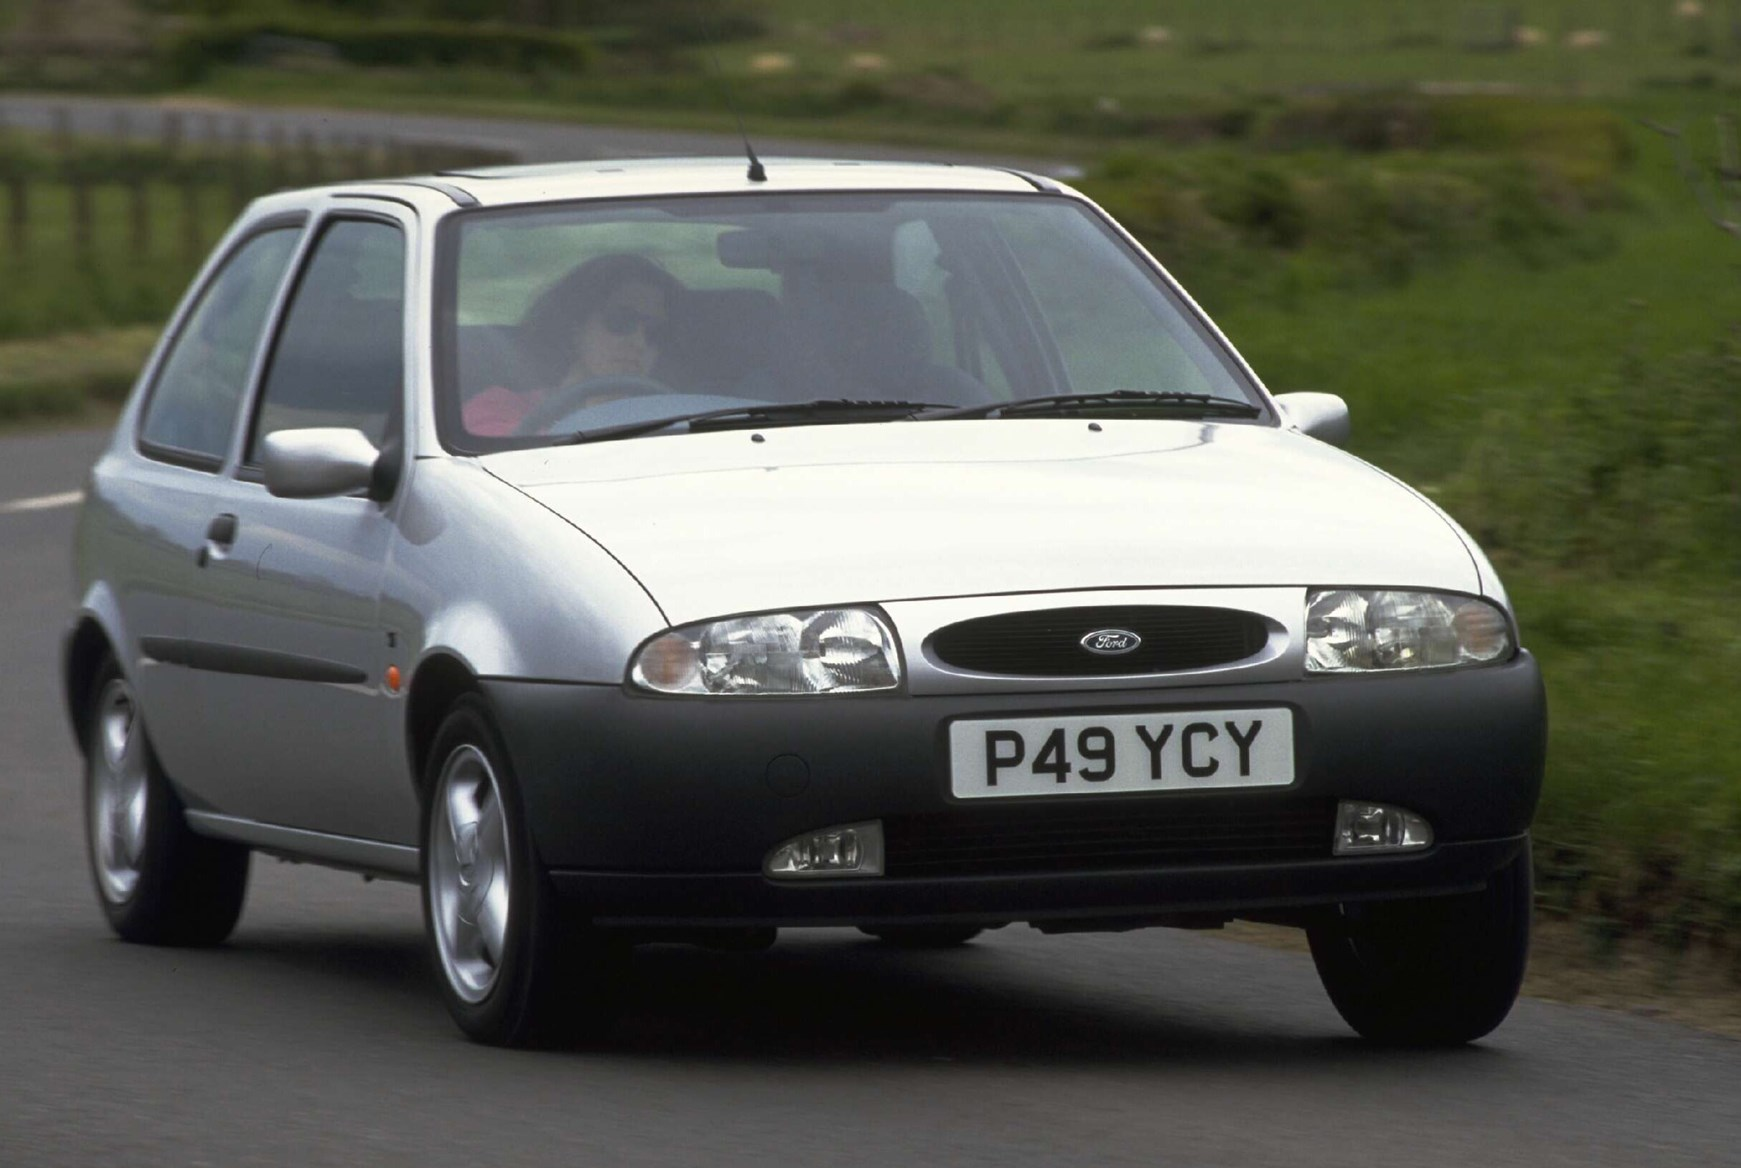 Used Car Loan >> Ford Fiesta Hatchback (1995 - 1999) Photos | Parkers